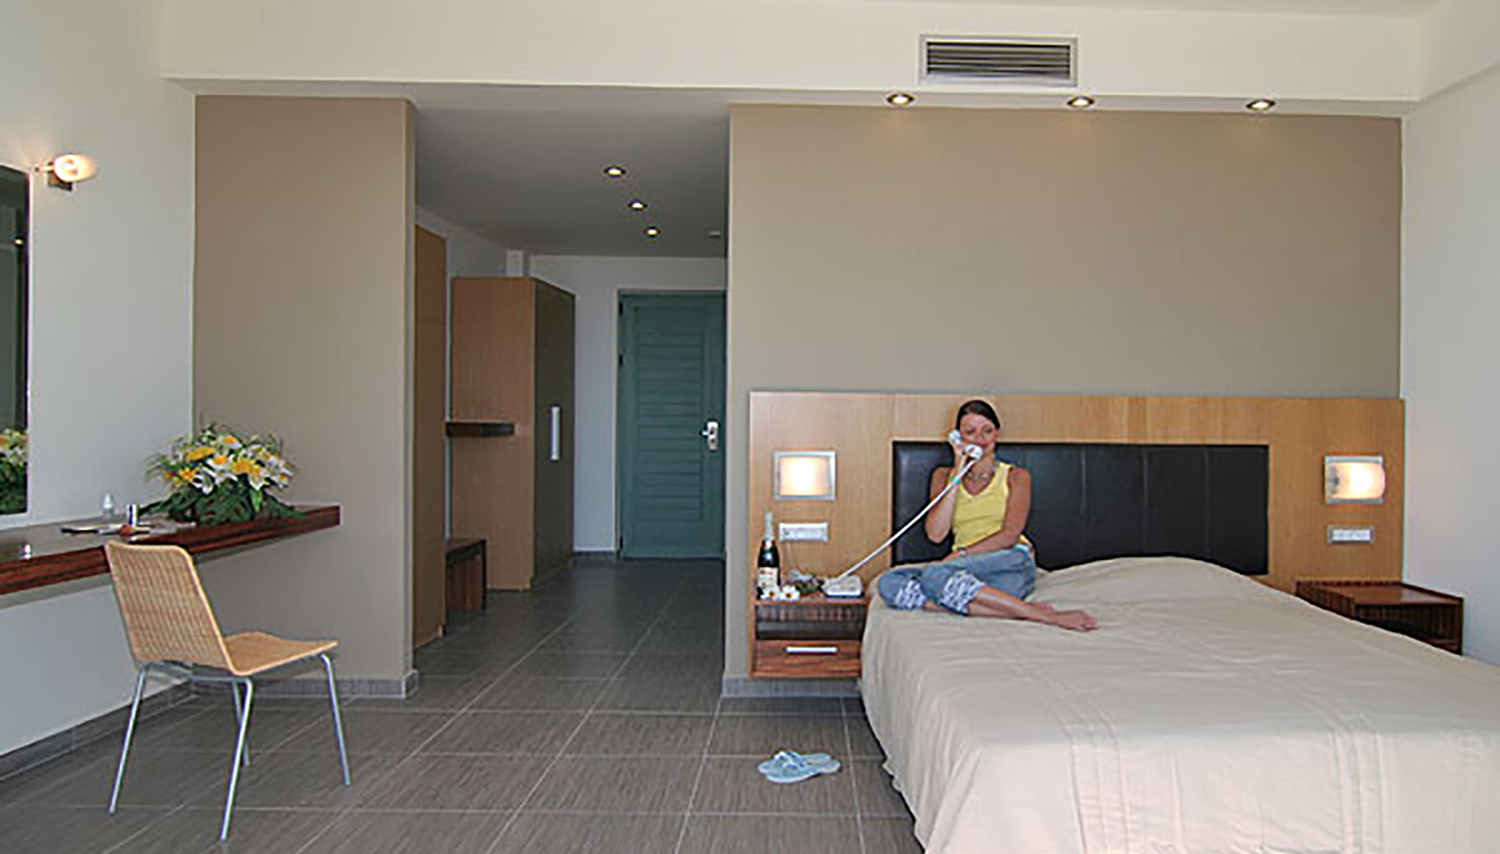 Virginia Family Suite hotell (Rhodos, Kreeka)